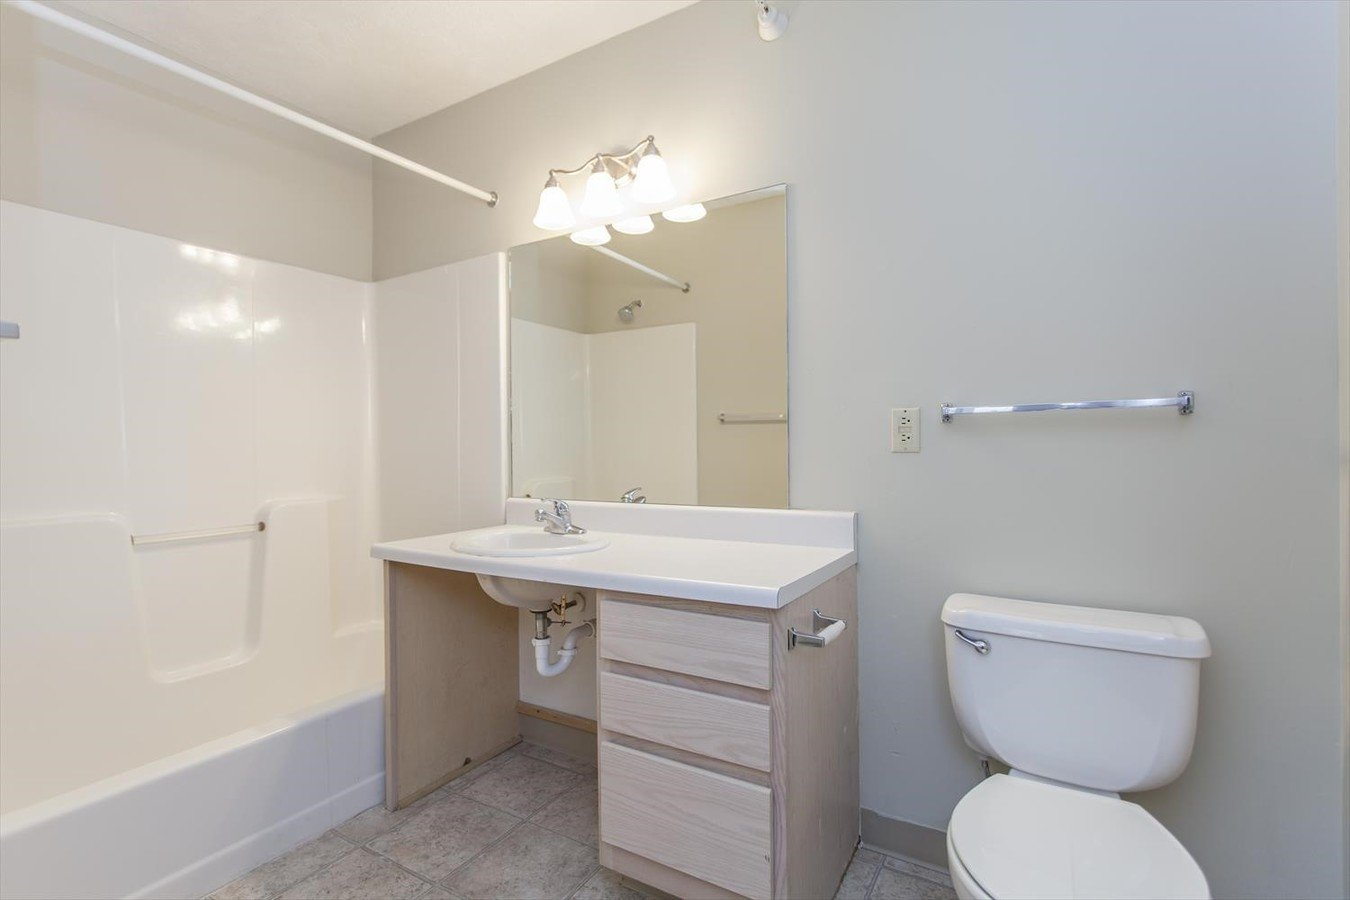 2 Bedrooms 1 Bathroom Apartment for rent at Cambridge Apartments in Fremont, NE